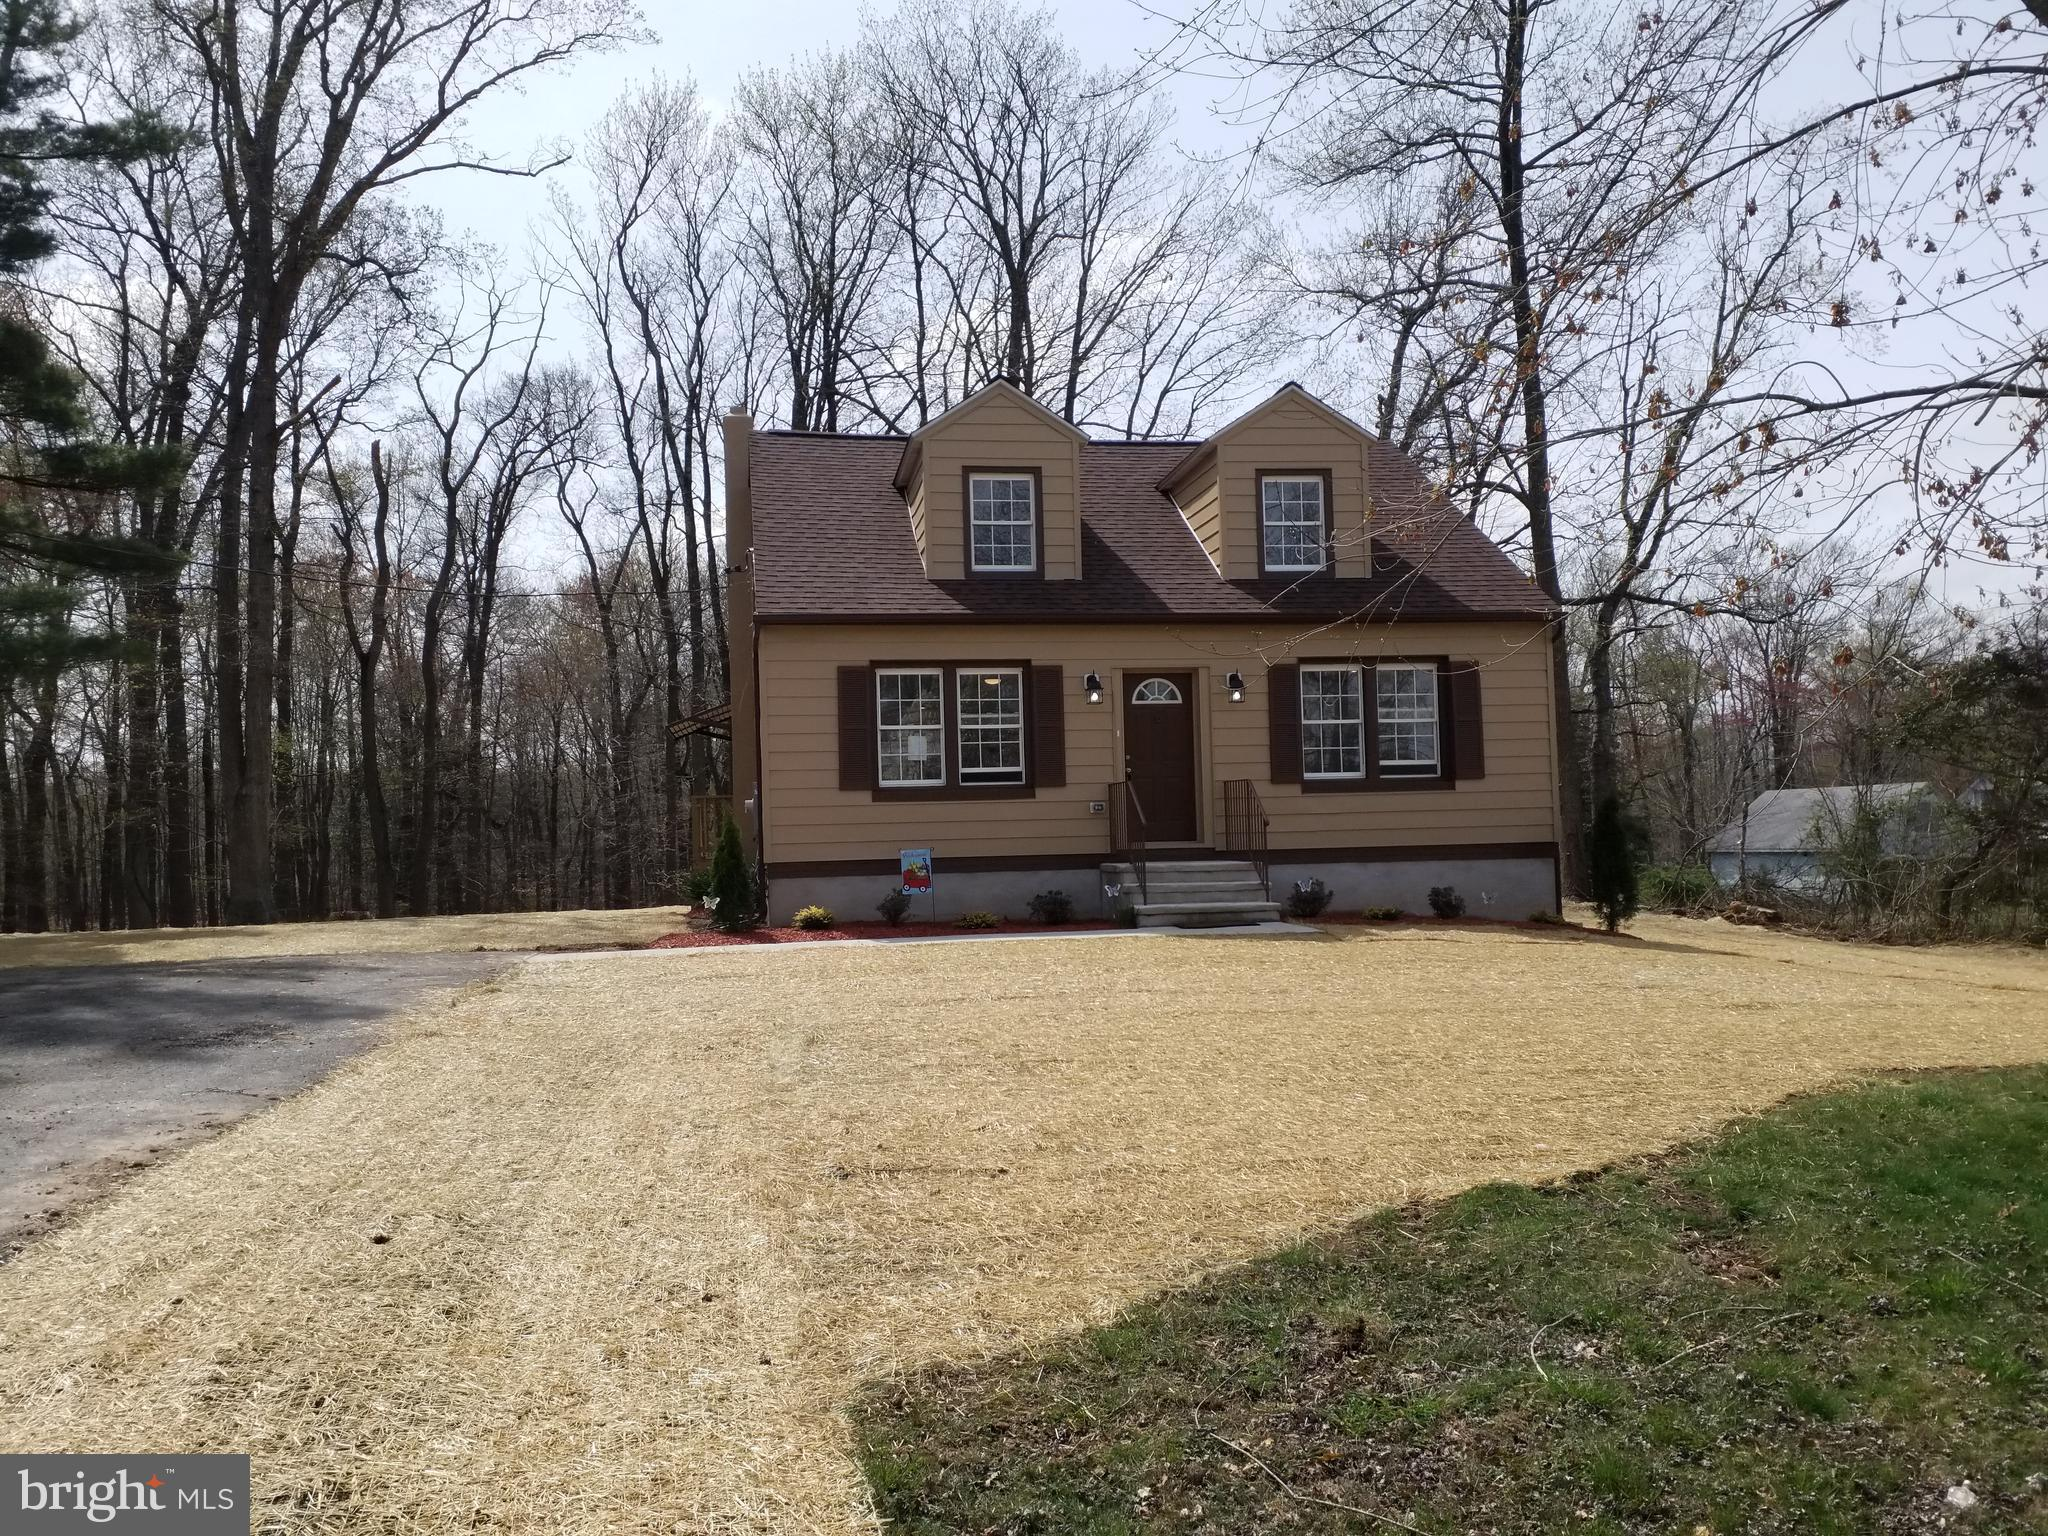 WOW Watkins Construction did Again  Another Very Beautiful  Home Totally rehabbed from fresh paint,